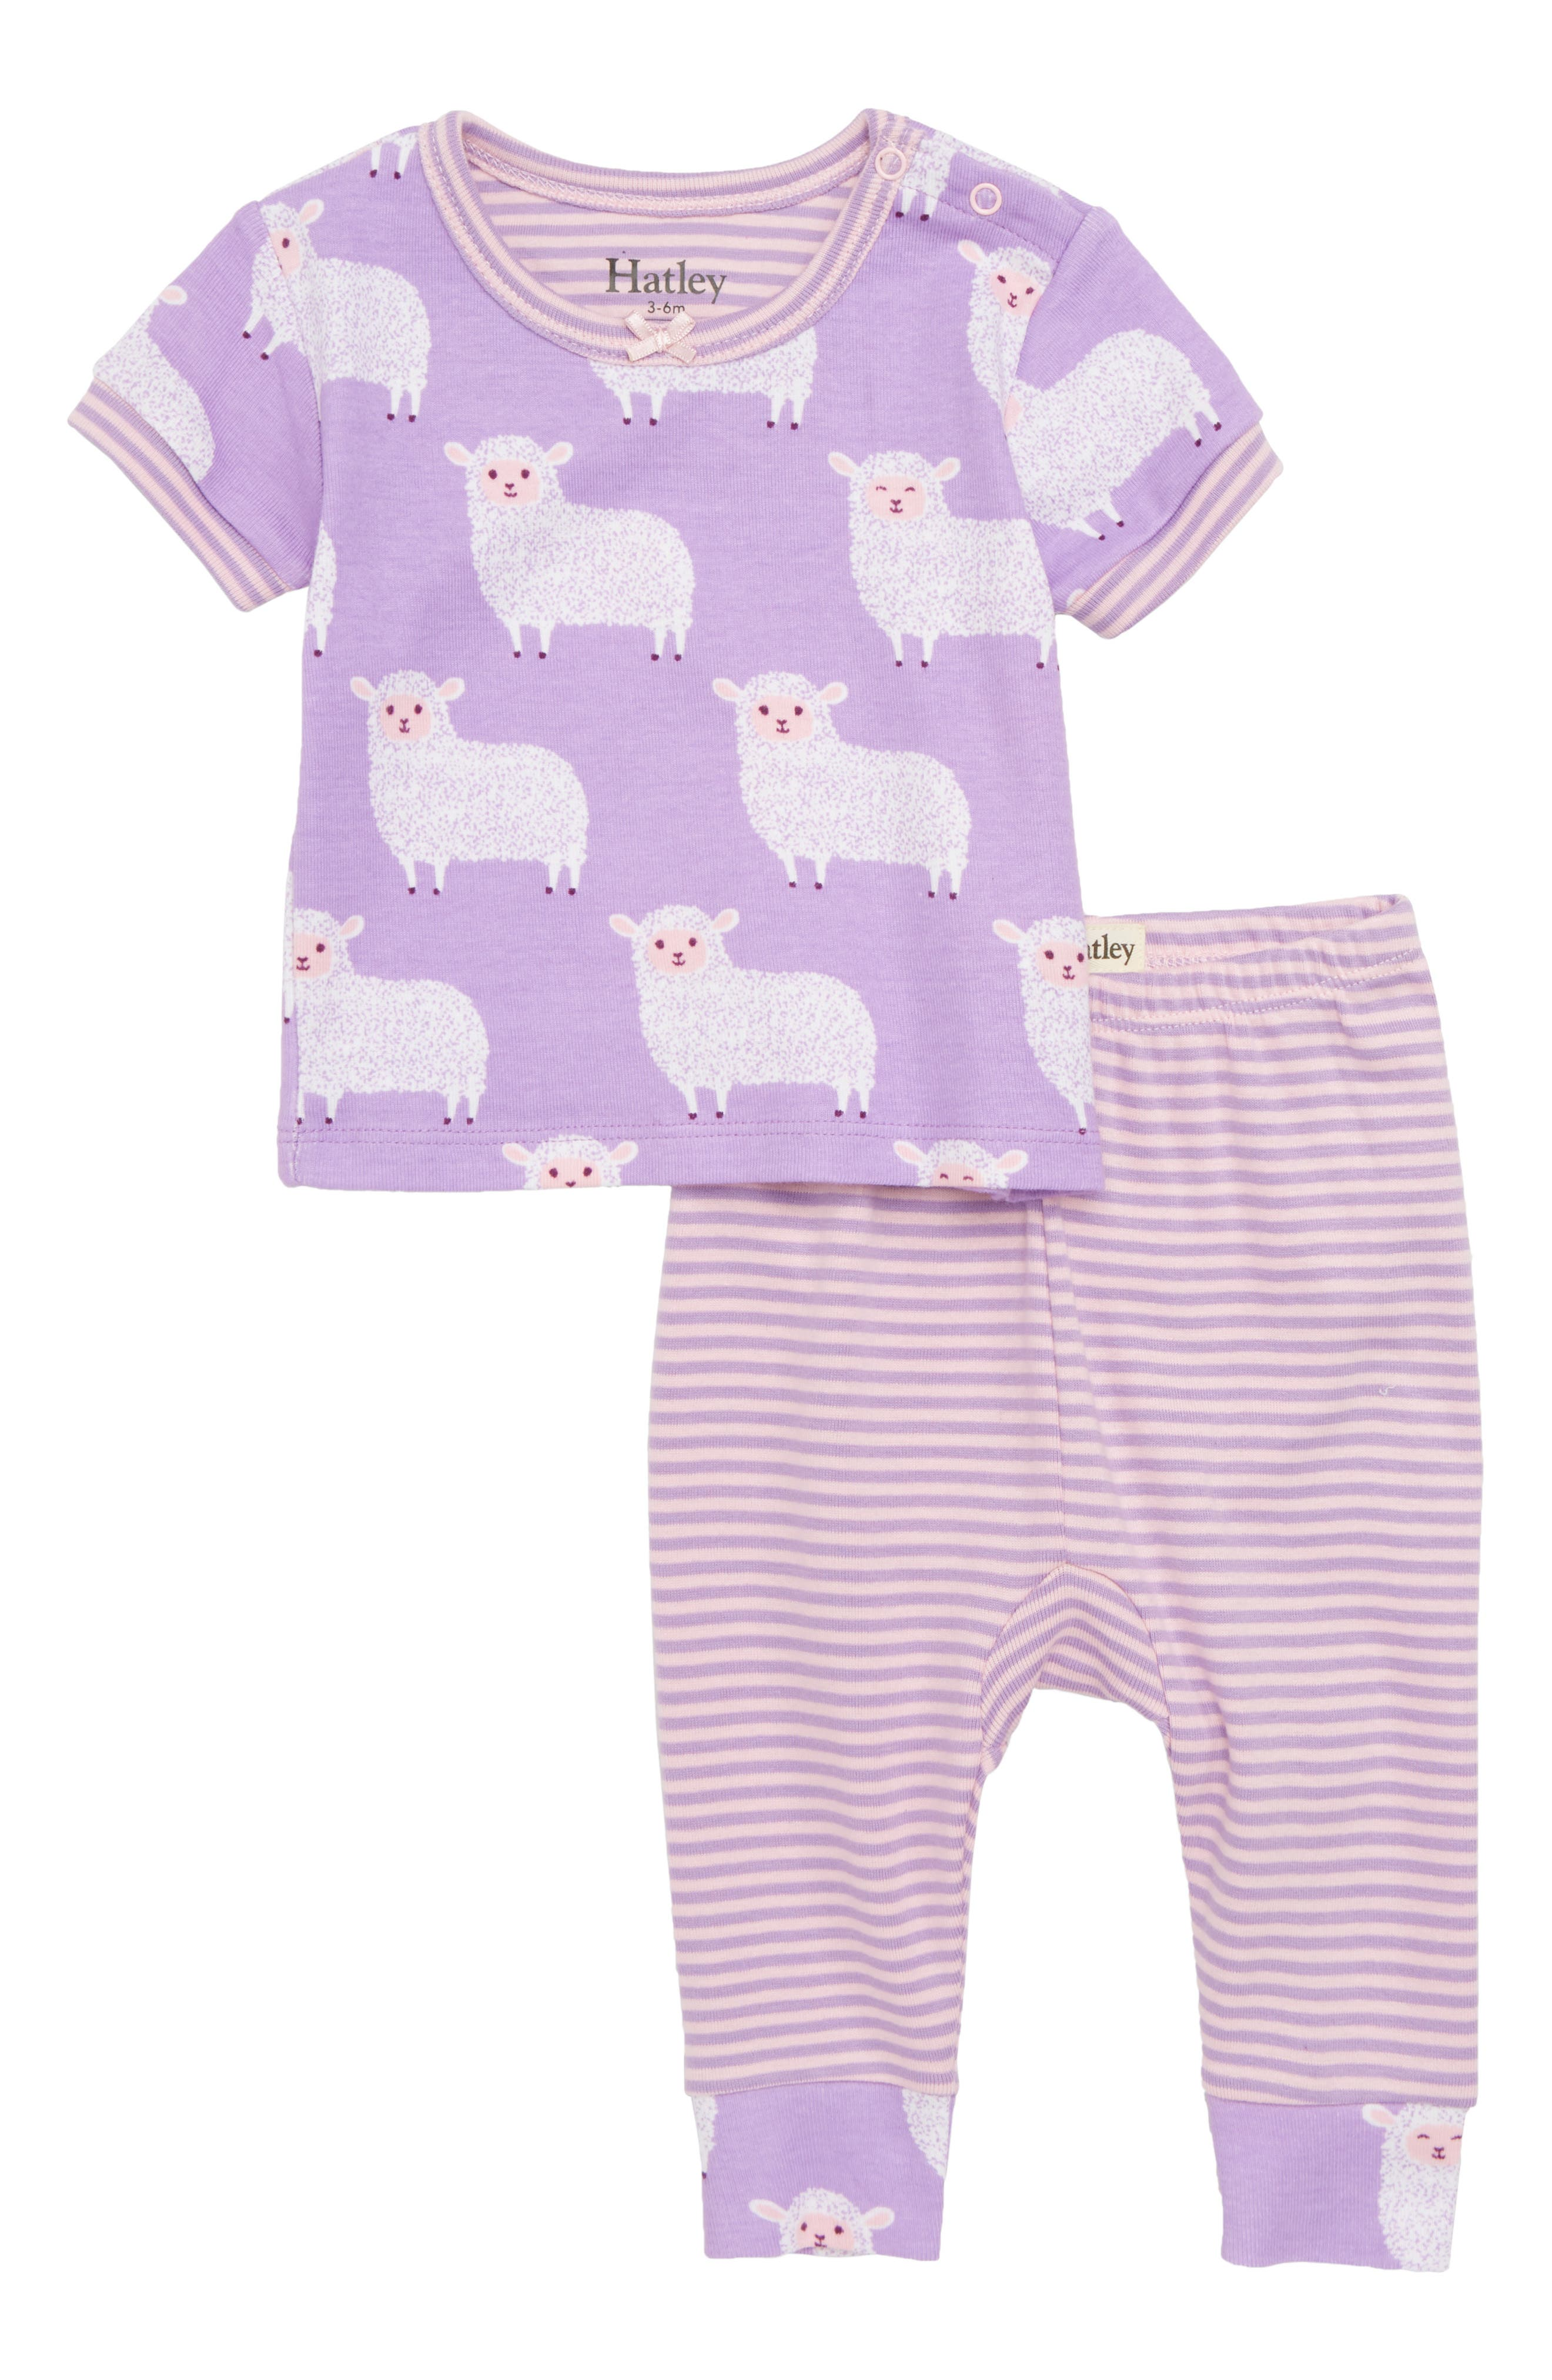 Counting Sheep Fitted Two-Piece Pajamas,                             Main thumbnail 1, color,                             Counting Sheep